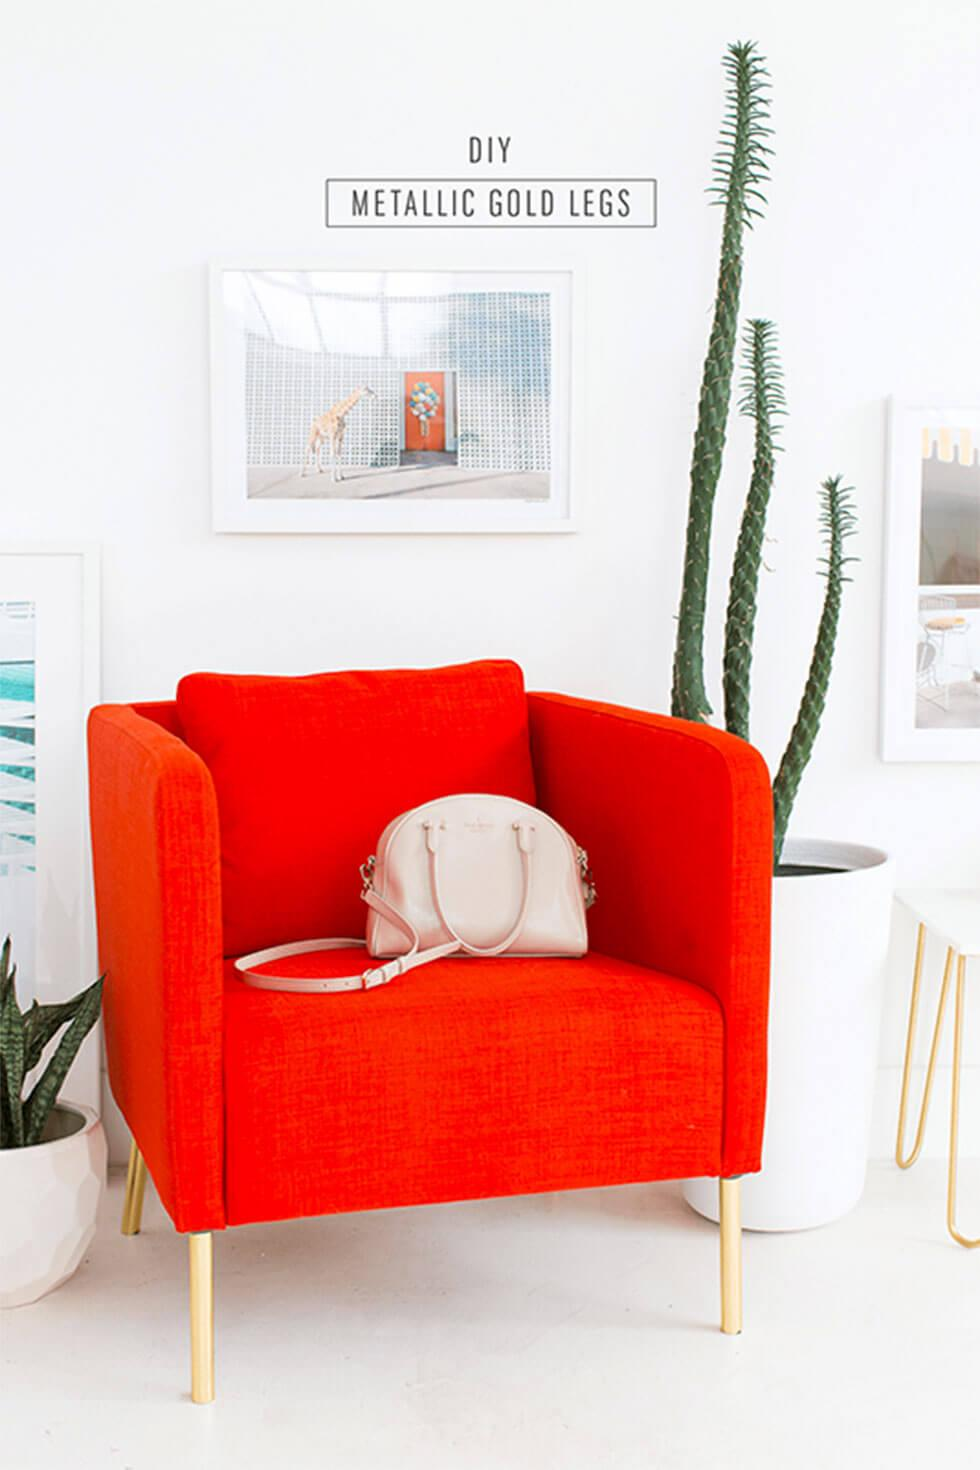 Bright red orange armchair with gold legs in a white room